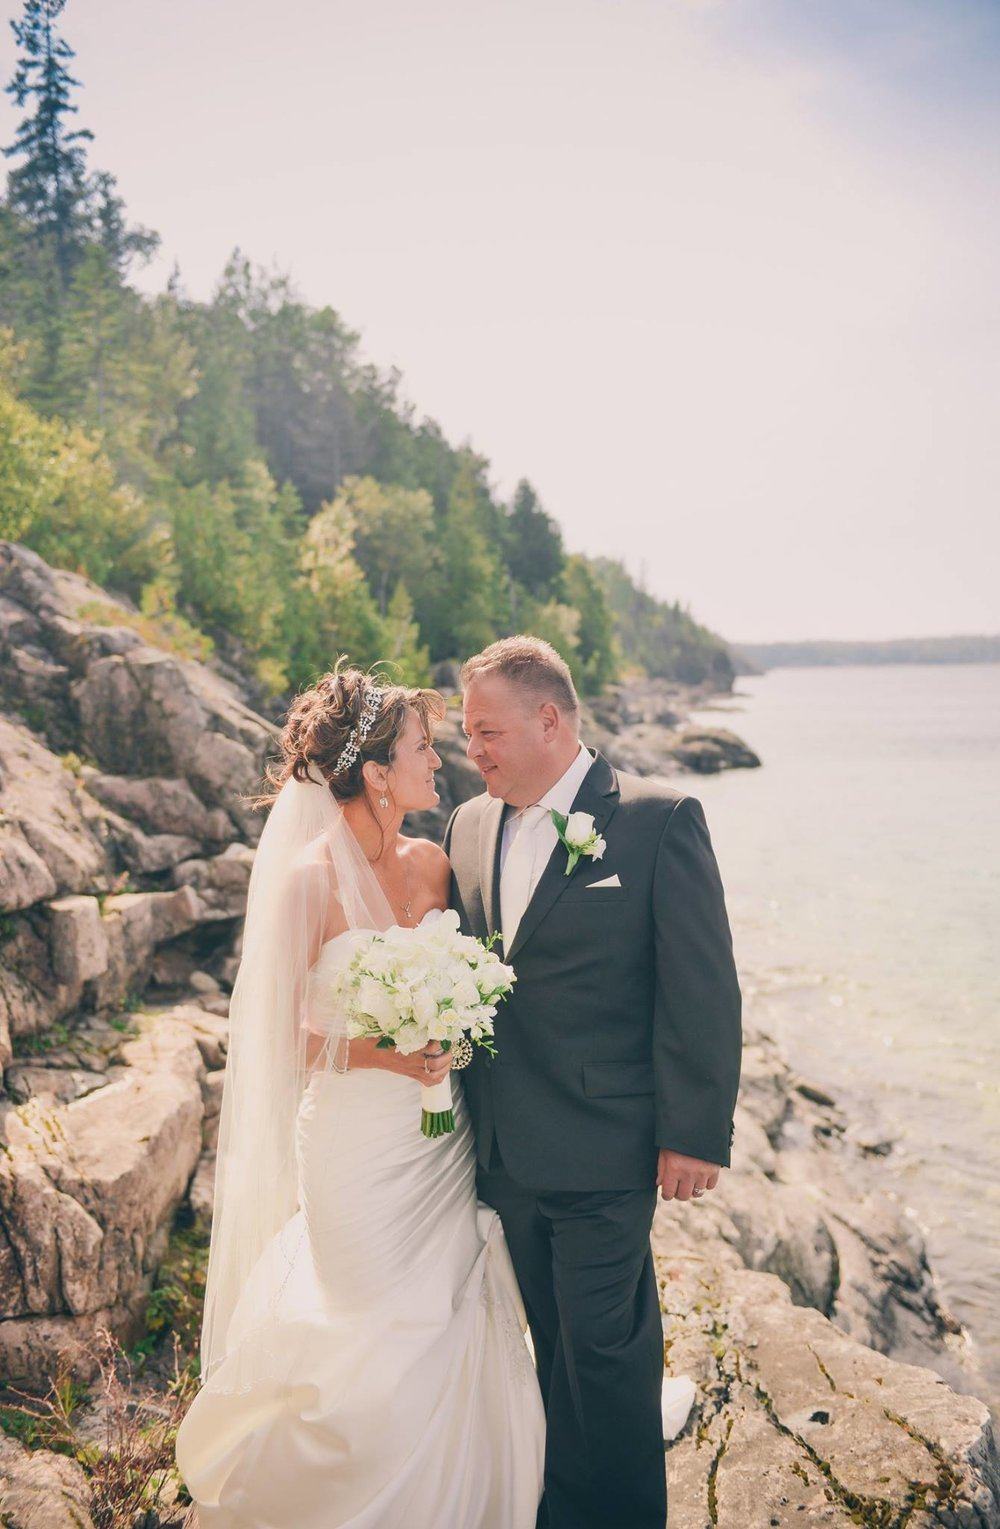 """From the first moment we met, there was a weight lifted off my shoulders. I had the vision, but with your unlimited skills and professionalism we couldn't have asked fro anyone better to pull things together and make it all happen. Your attention to every single detail was greatly appreciated. You are amazing at your job!      - Kelly & Jeff Georgian Bay, ON"